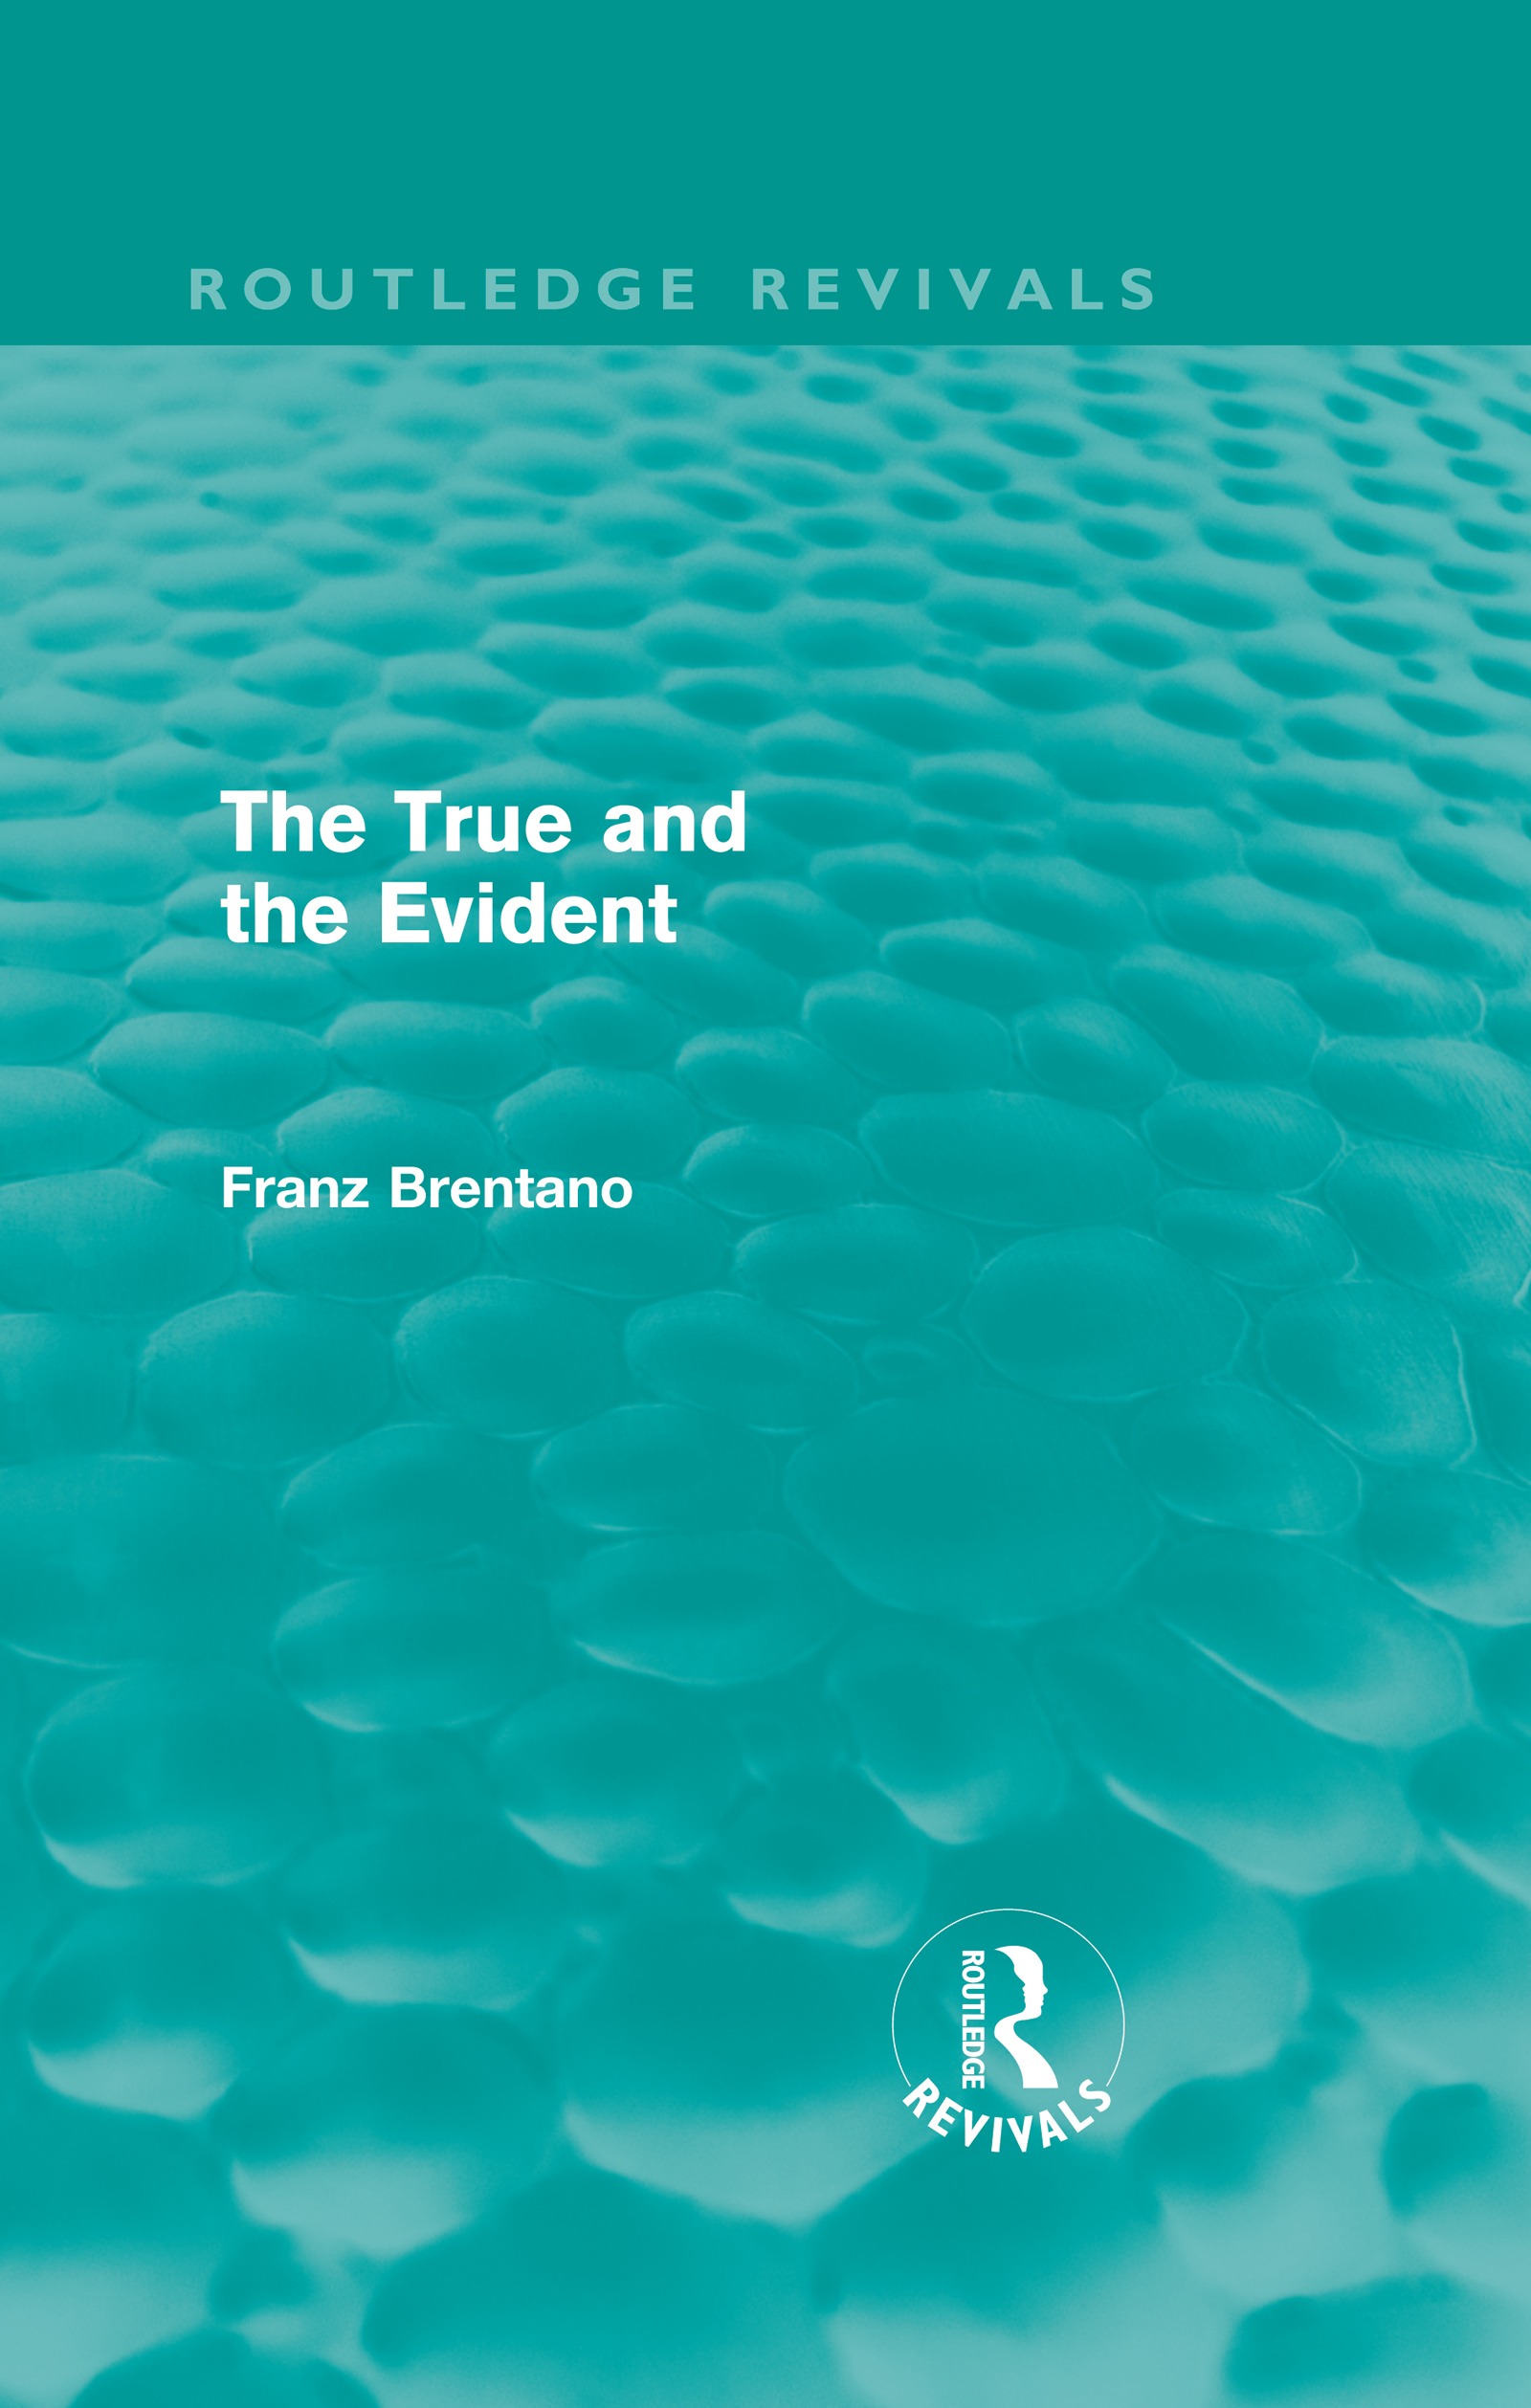 The True and the Evident (Routledge Revivals)